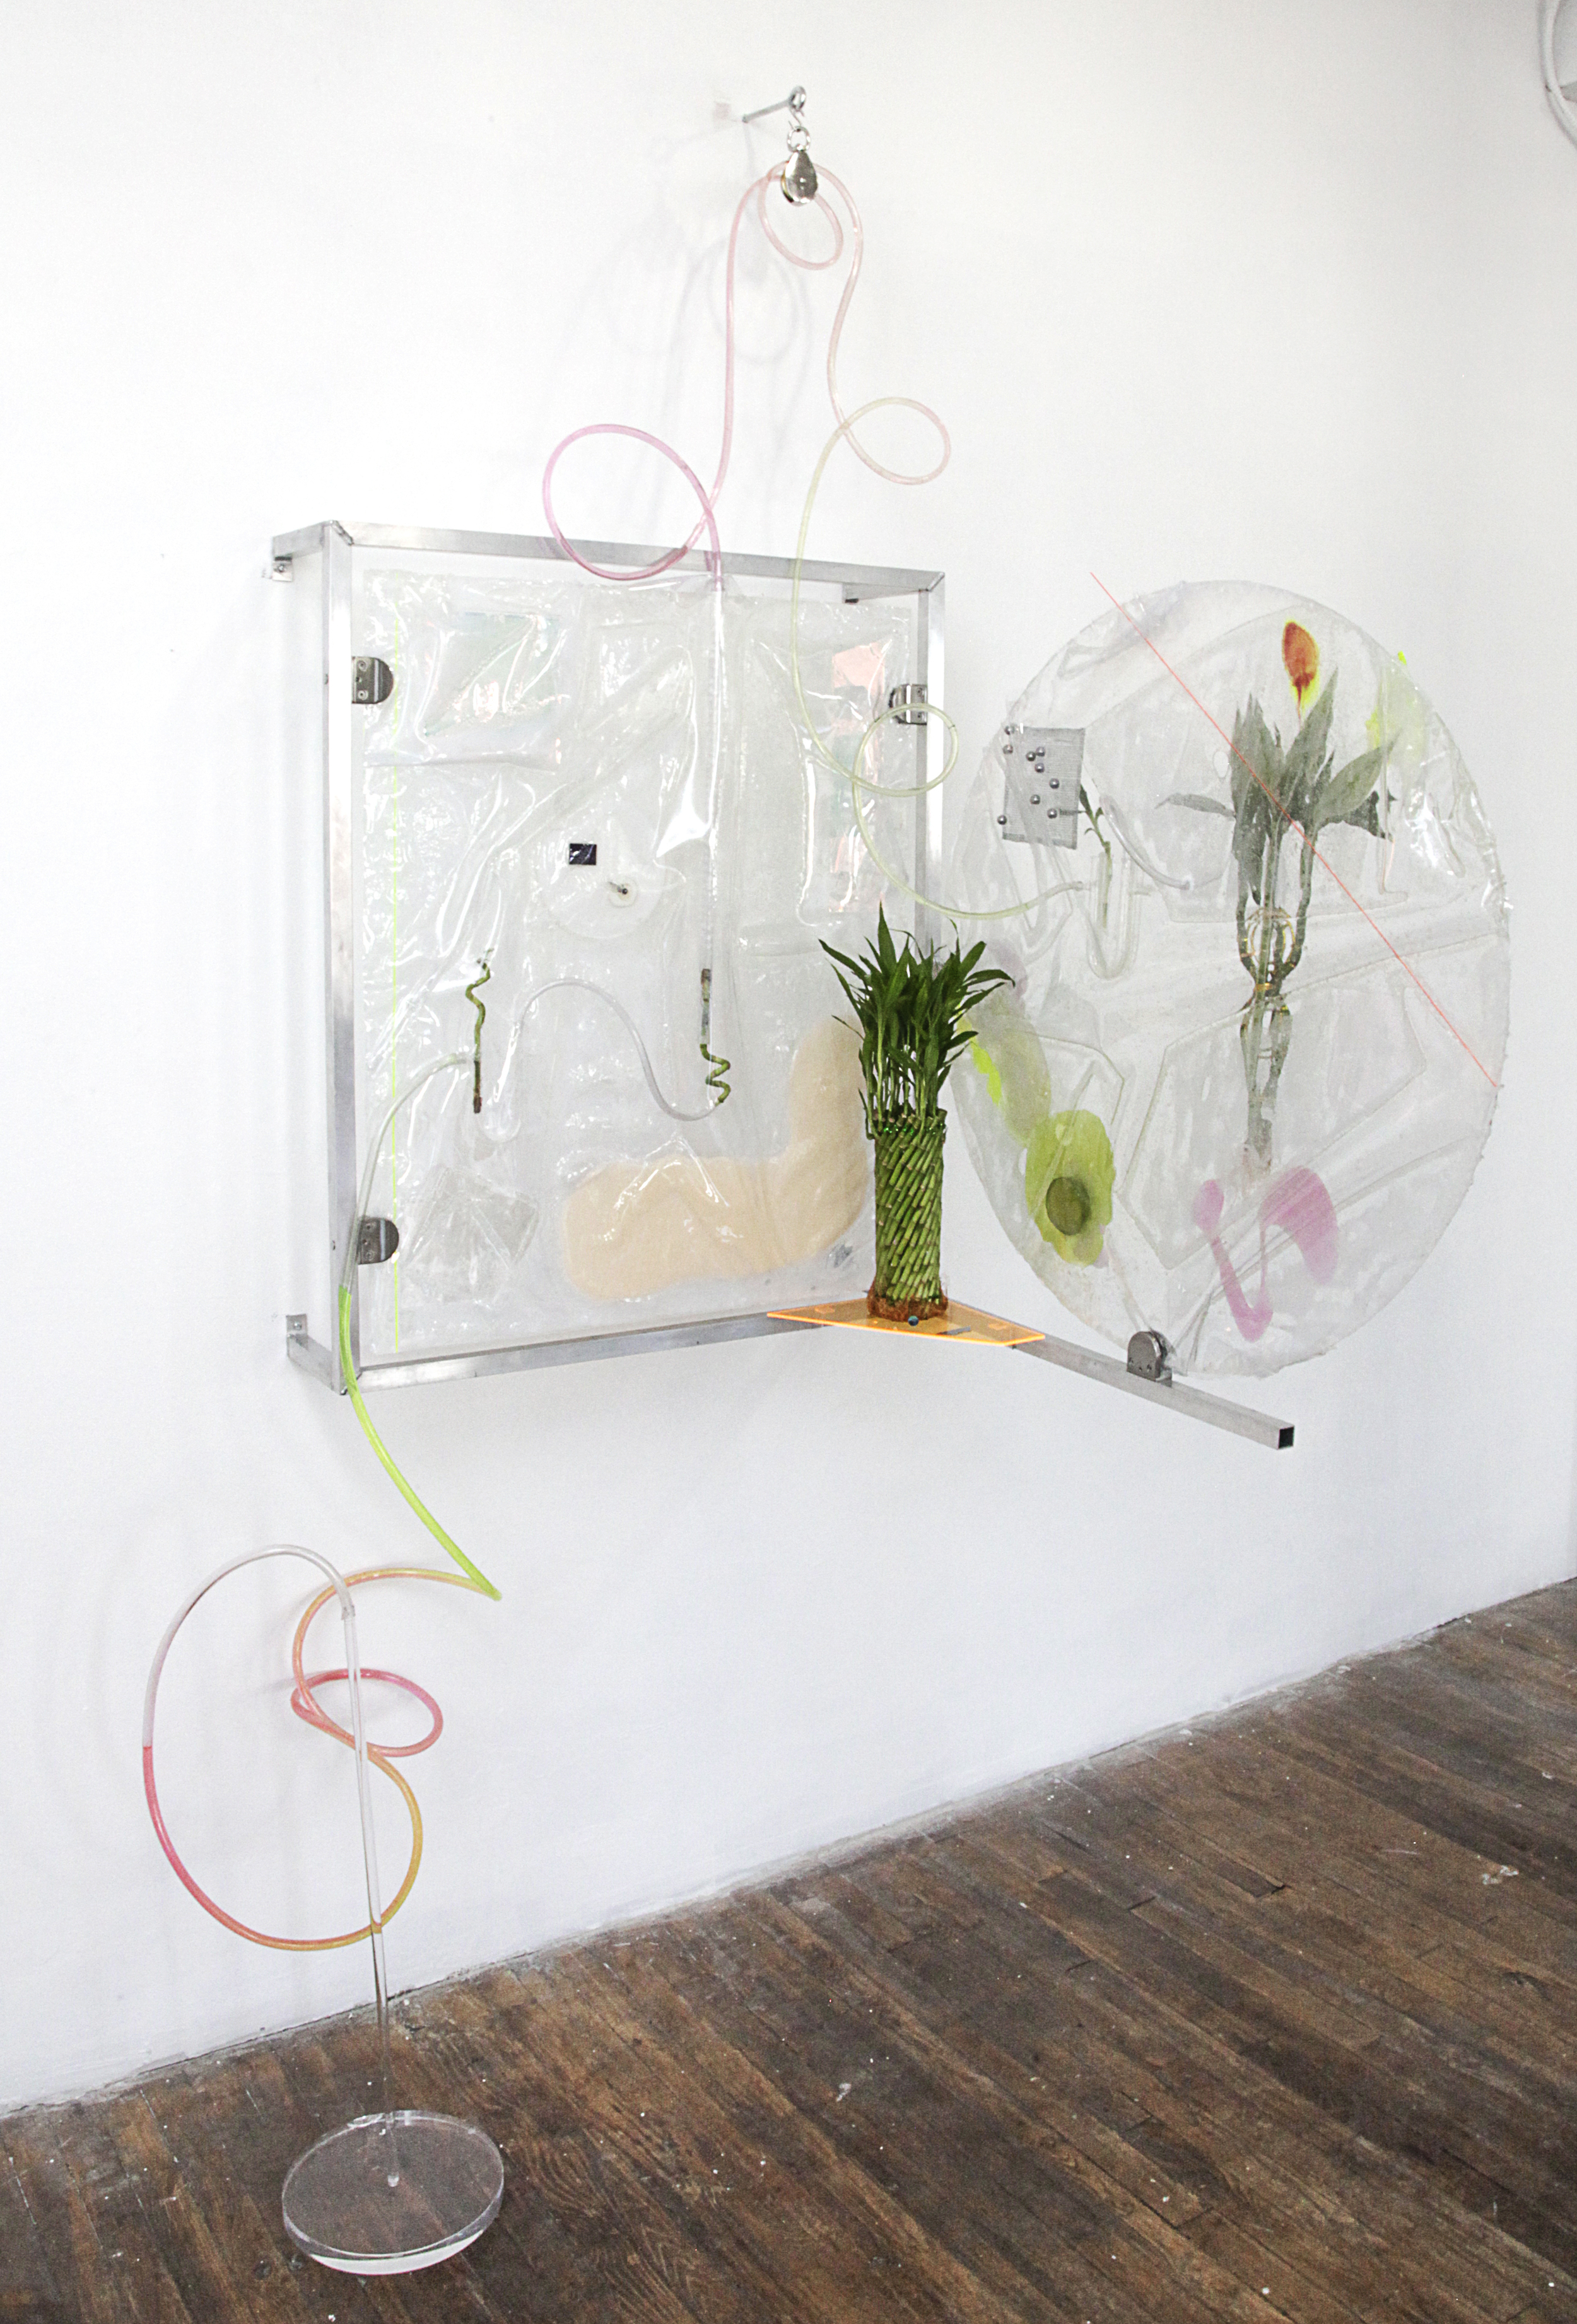 Heidi Norton ,  The Plight (feeding Systems) ,2015, Acrylic, dielectric glass, resin, vinyl, bamboo, tubing, electrodes with thermal switch, burner screen, pulley, crystal soil water beads, U- shaped draying tubes, aluminum frame, LCD screens, ball bearings